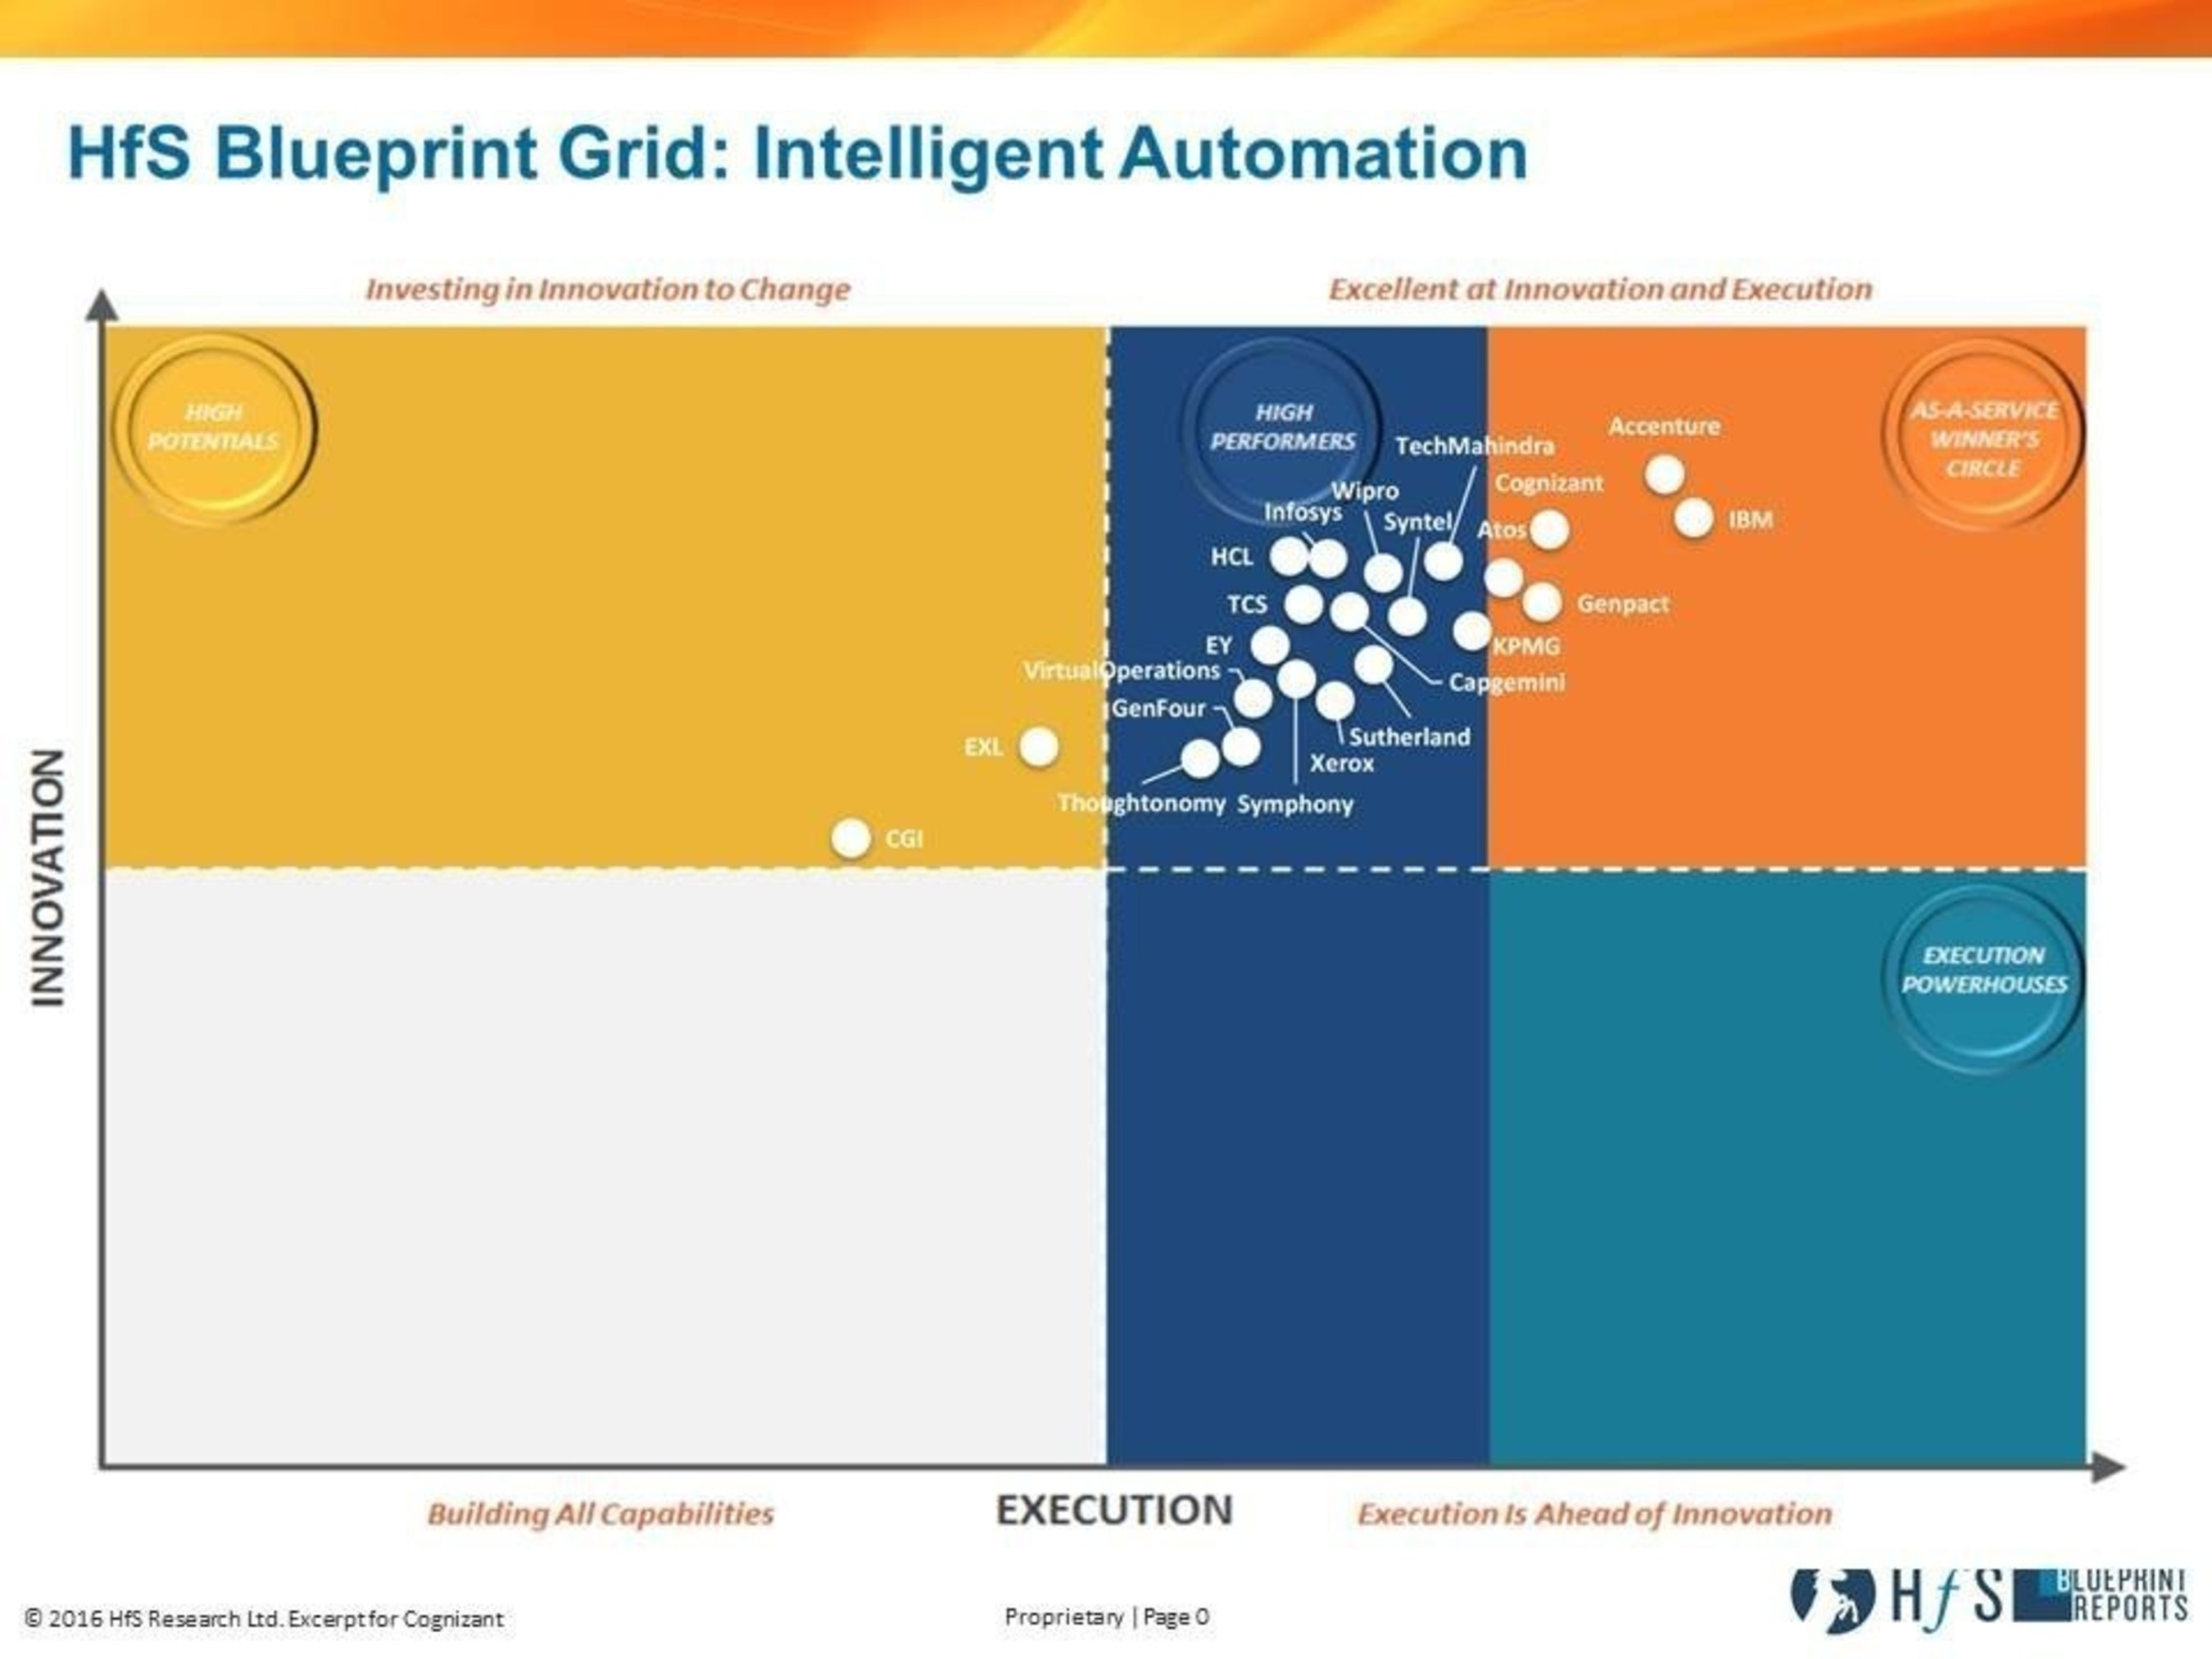 Cognizant Named to 'Winner's Circle' for Intelligent Automation in New HfS Research Report